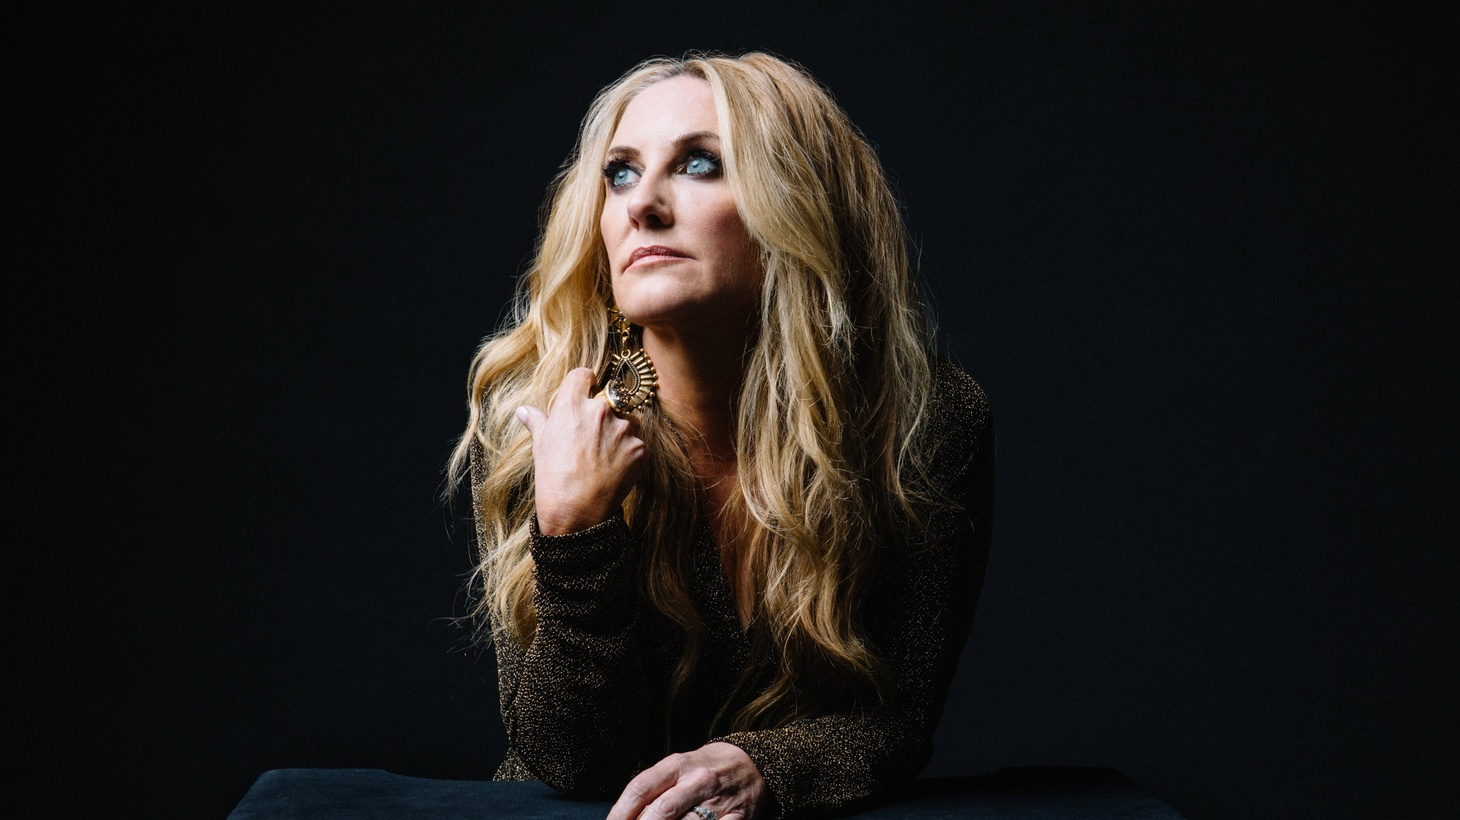 """Lee Ann Womack is an impeccable storyteller who is hailed as """"one of American Roots music's foremost auteurs"""" by NPR Music. Her voice, beautifully melancholic, shines on her new album."""